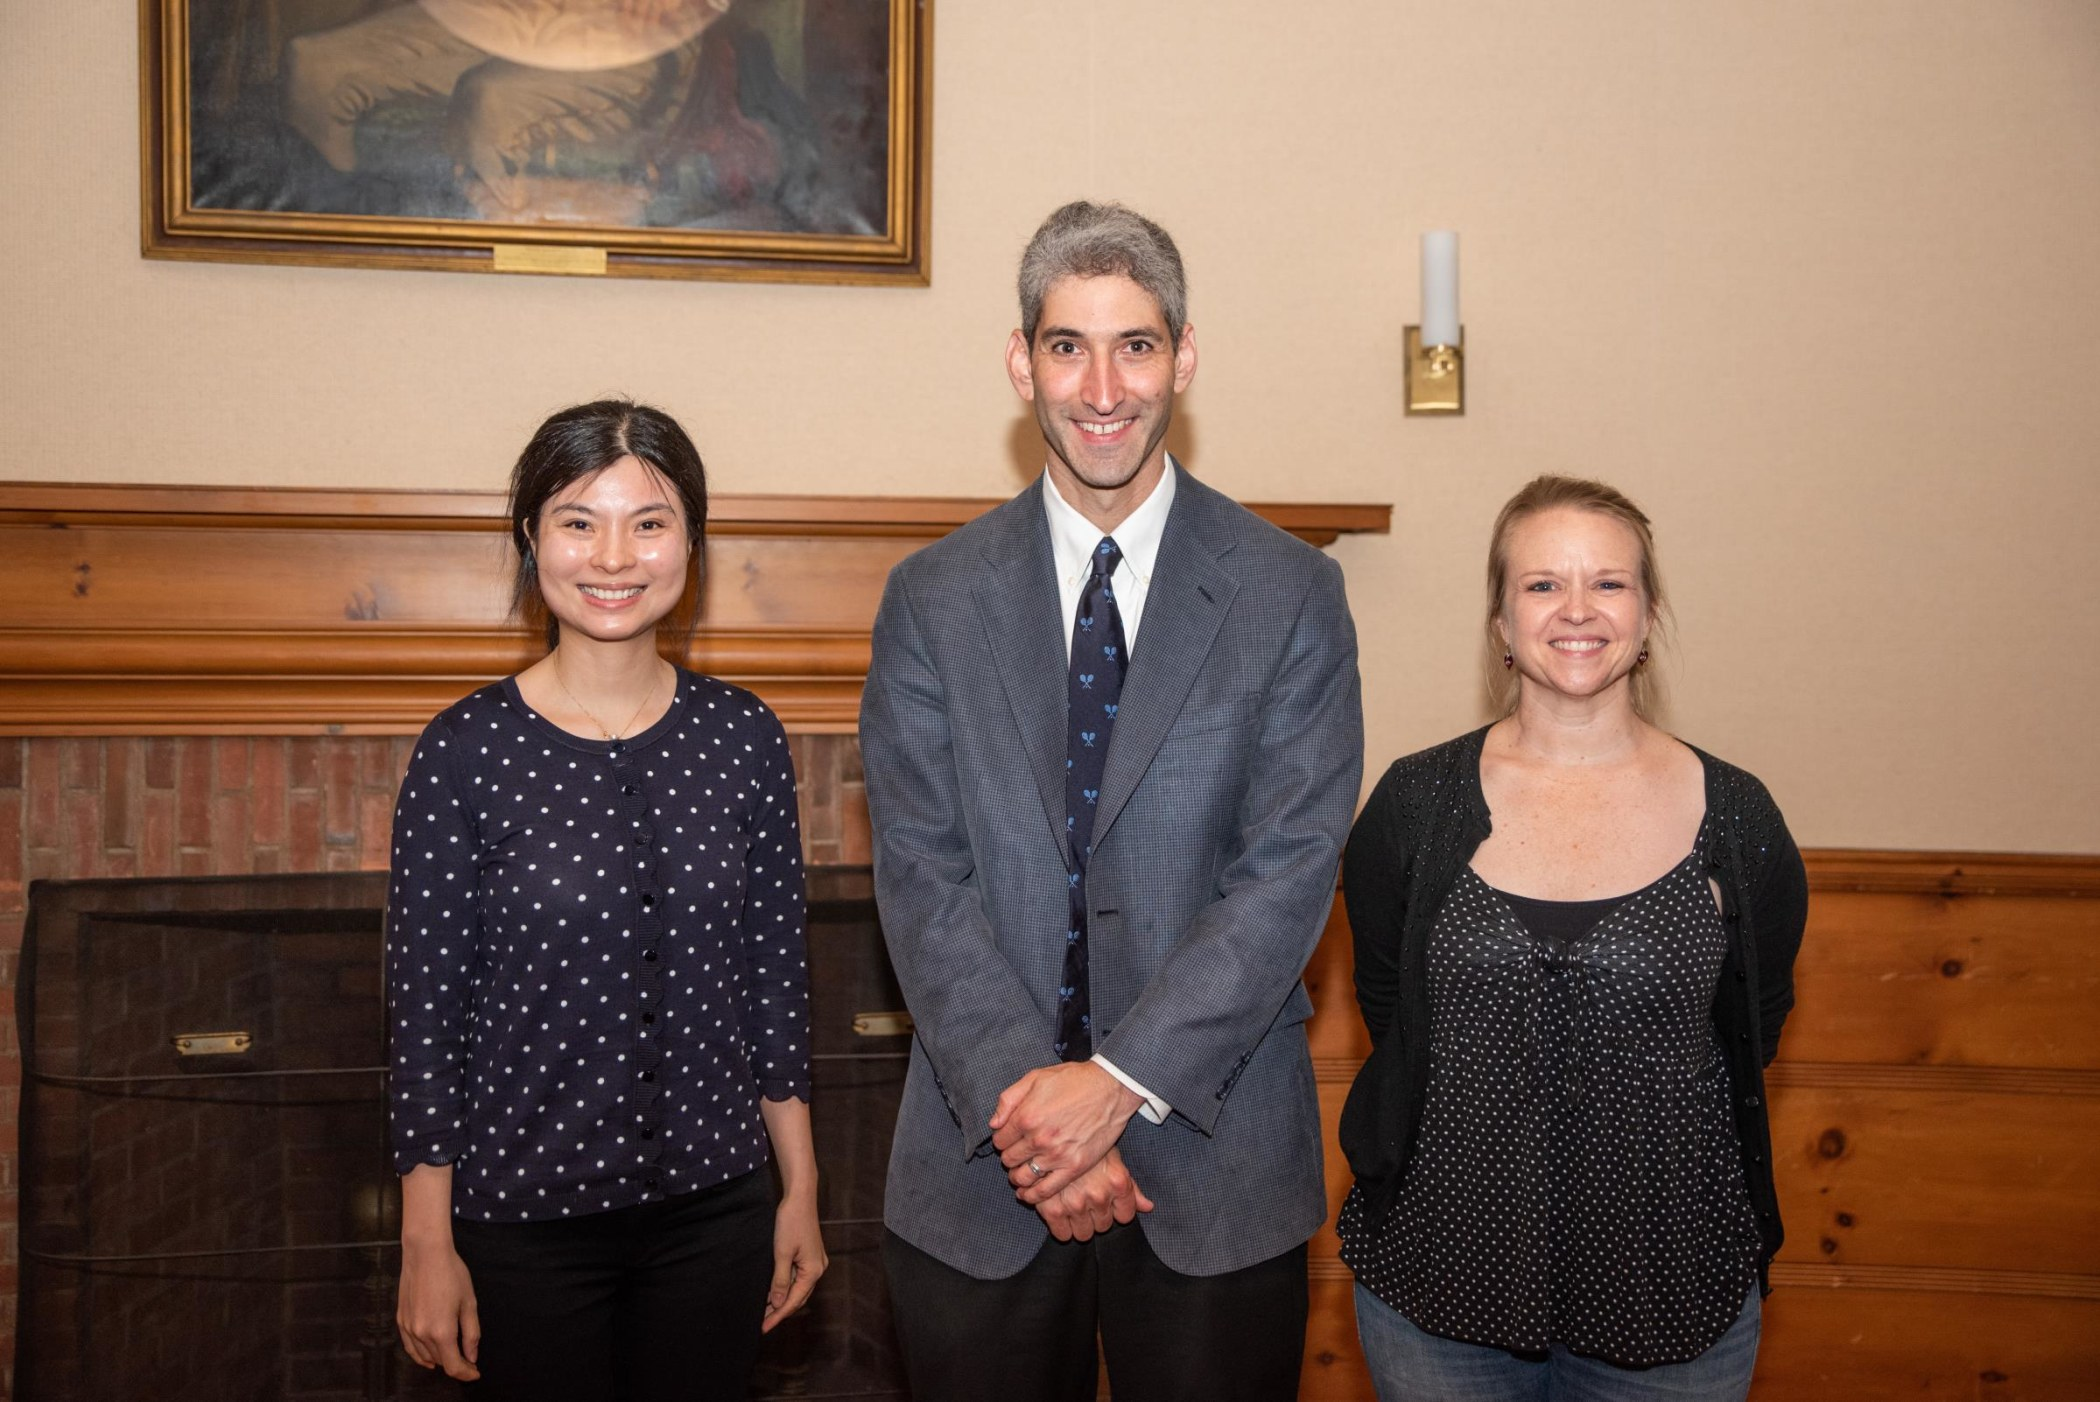 Dr. David Chambers from NCI with YSIS scholars Dr. Kimberly Hieftje and Dr. Yuan Lu